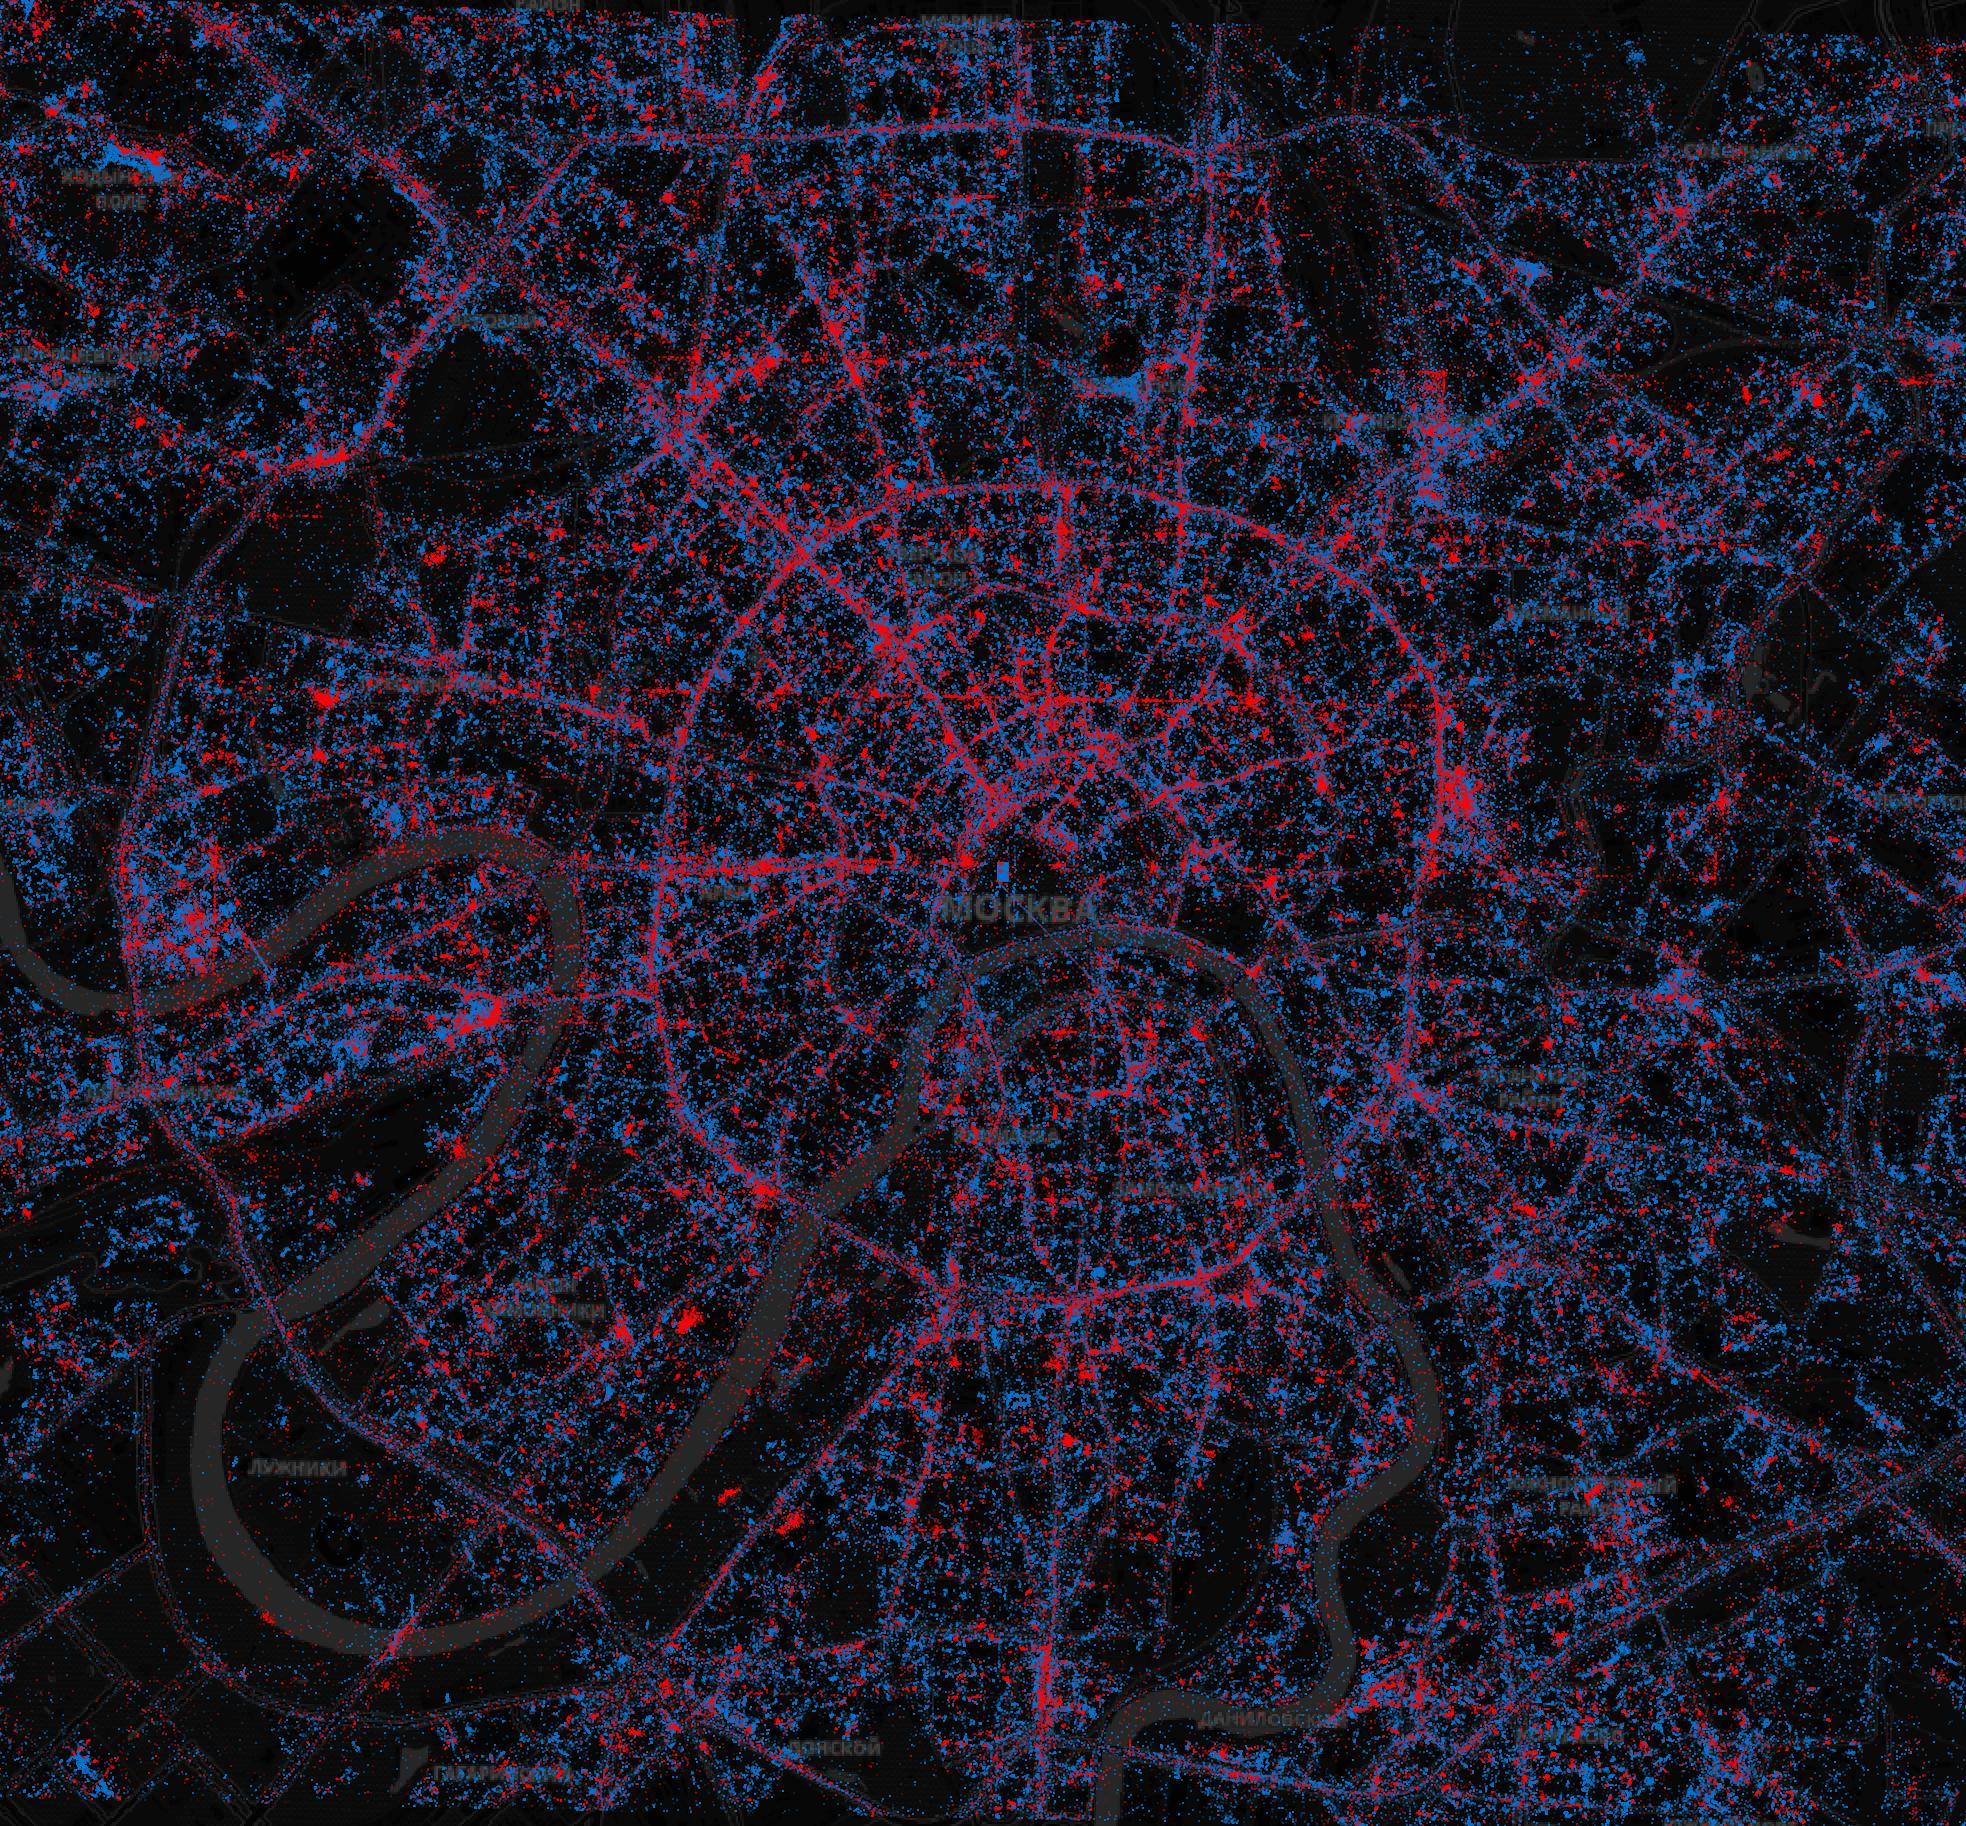 In Moscow - iPhones, in St. Petersburg - Android. What are the maps of Android and iOS users in Russia | Kanobu - Image 1